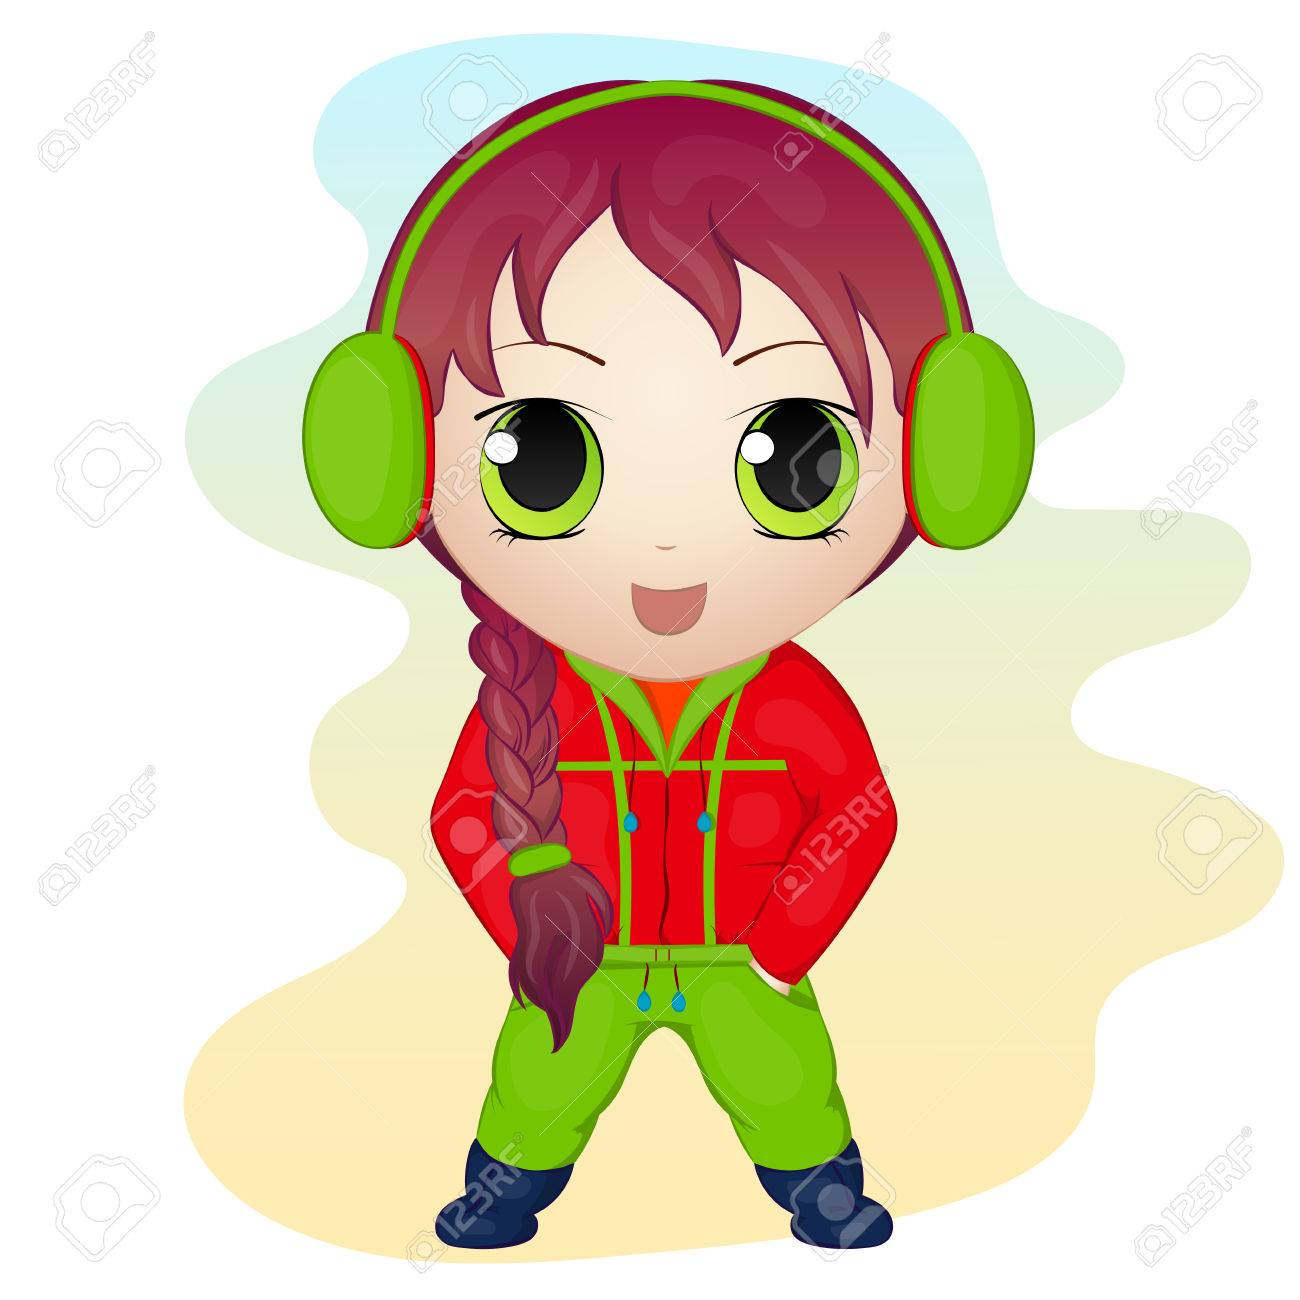 Cute anime chibi little girl wearing earmuffs simple cartoon style vector illustration new